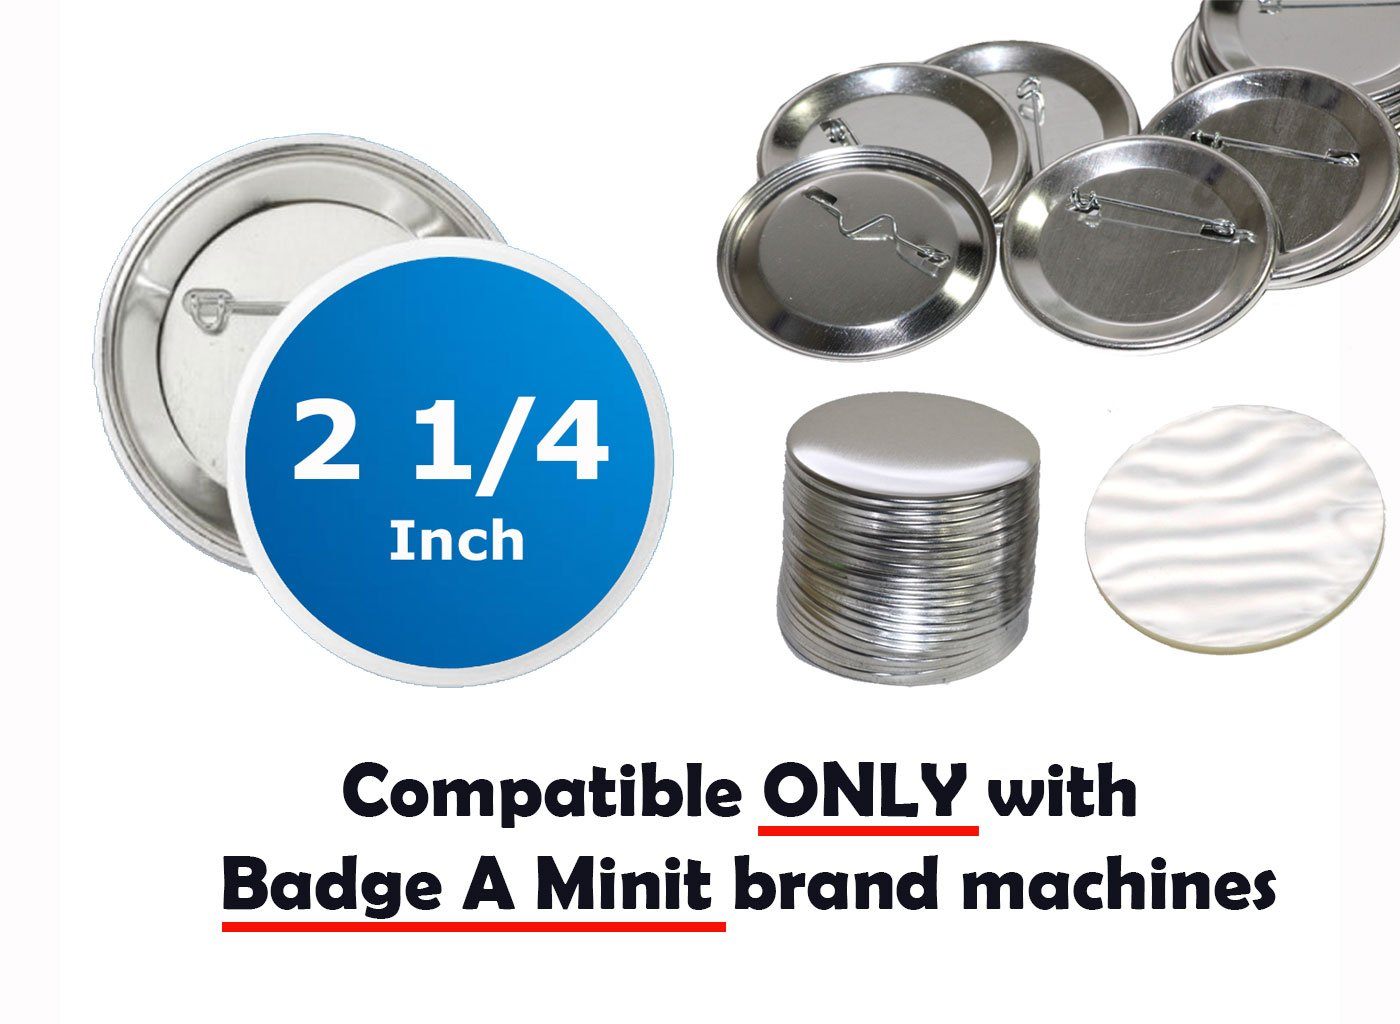 100 Pck - 2.25 inch ONLY for BAM Machines Pin Buttons - Generic Compatible with Badge A Minit 2 1/4